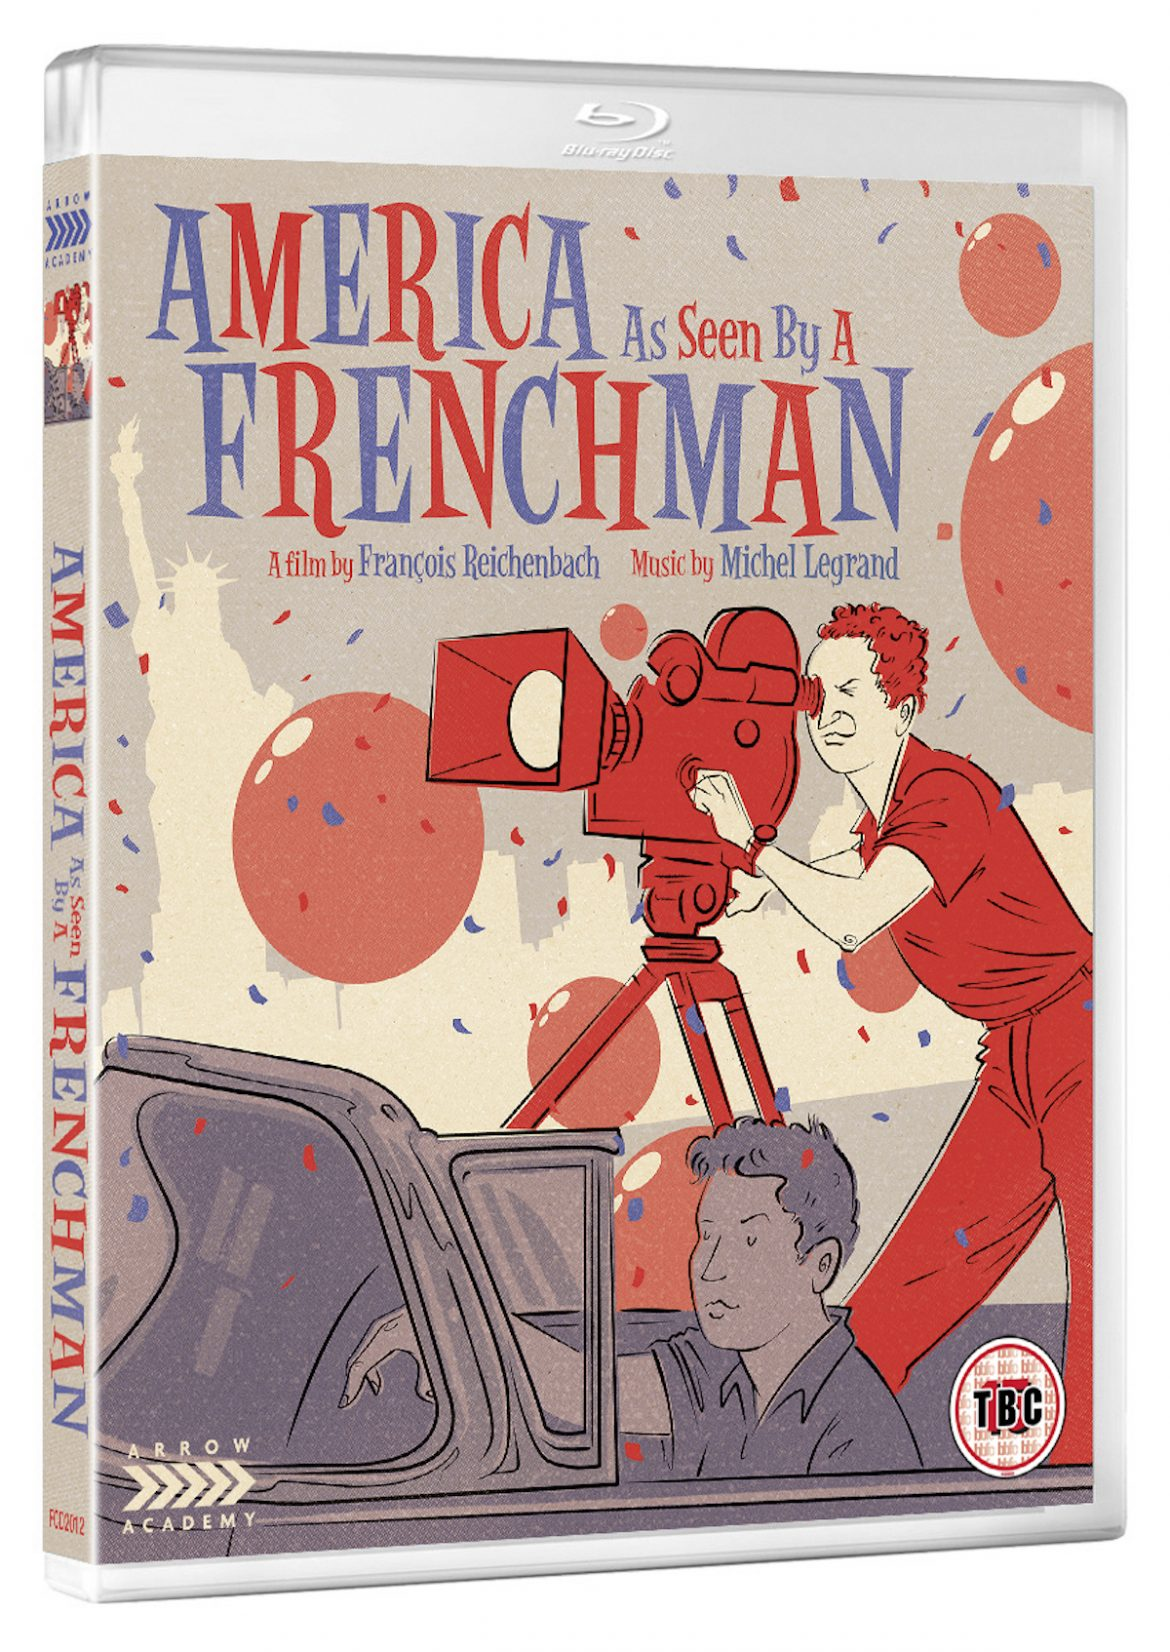 american as seen by a frenchman (1960)